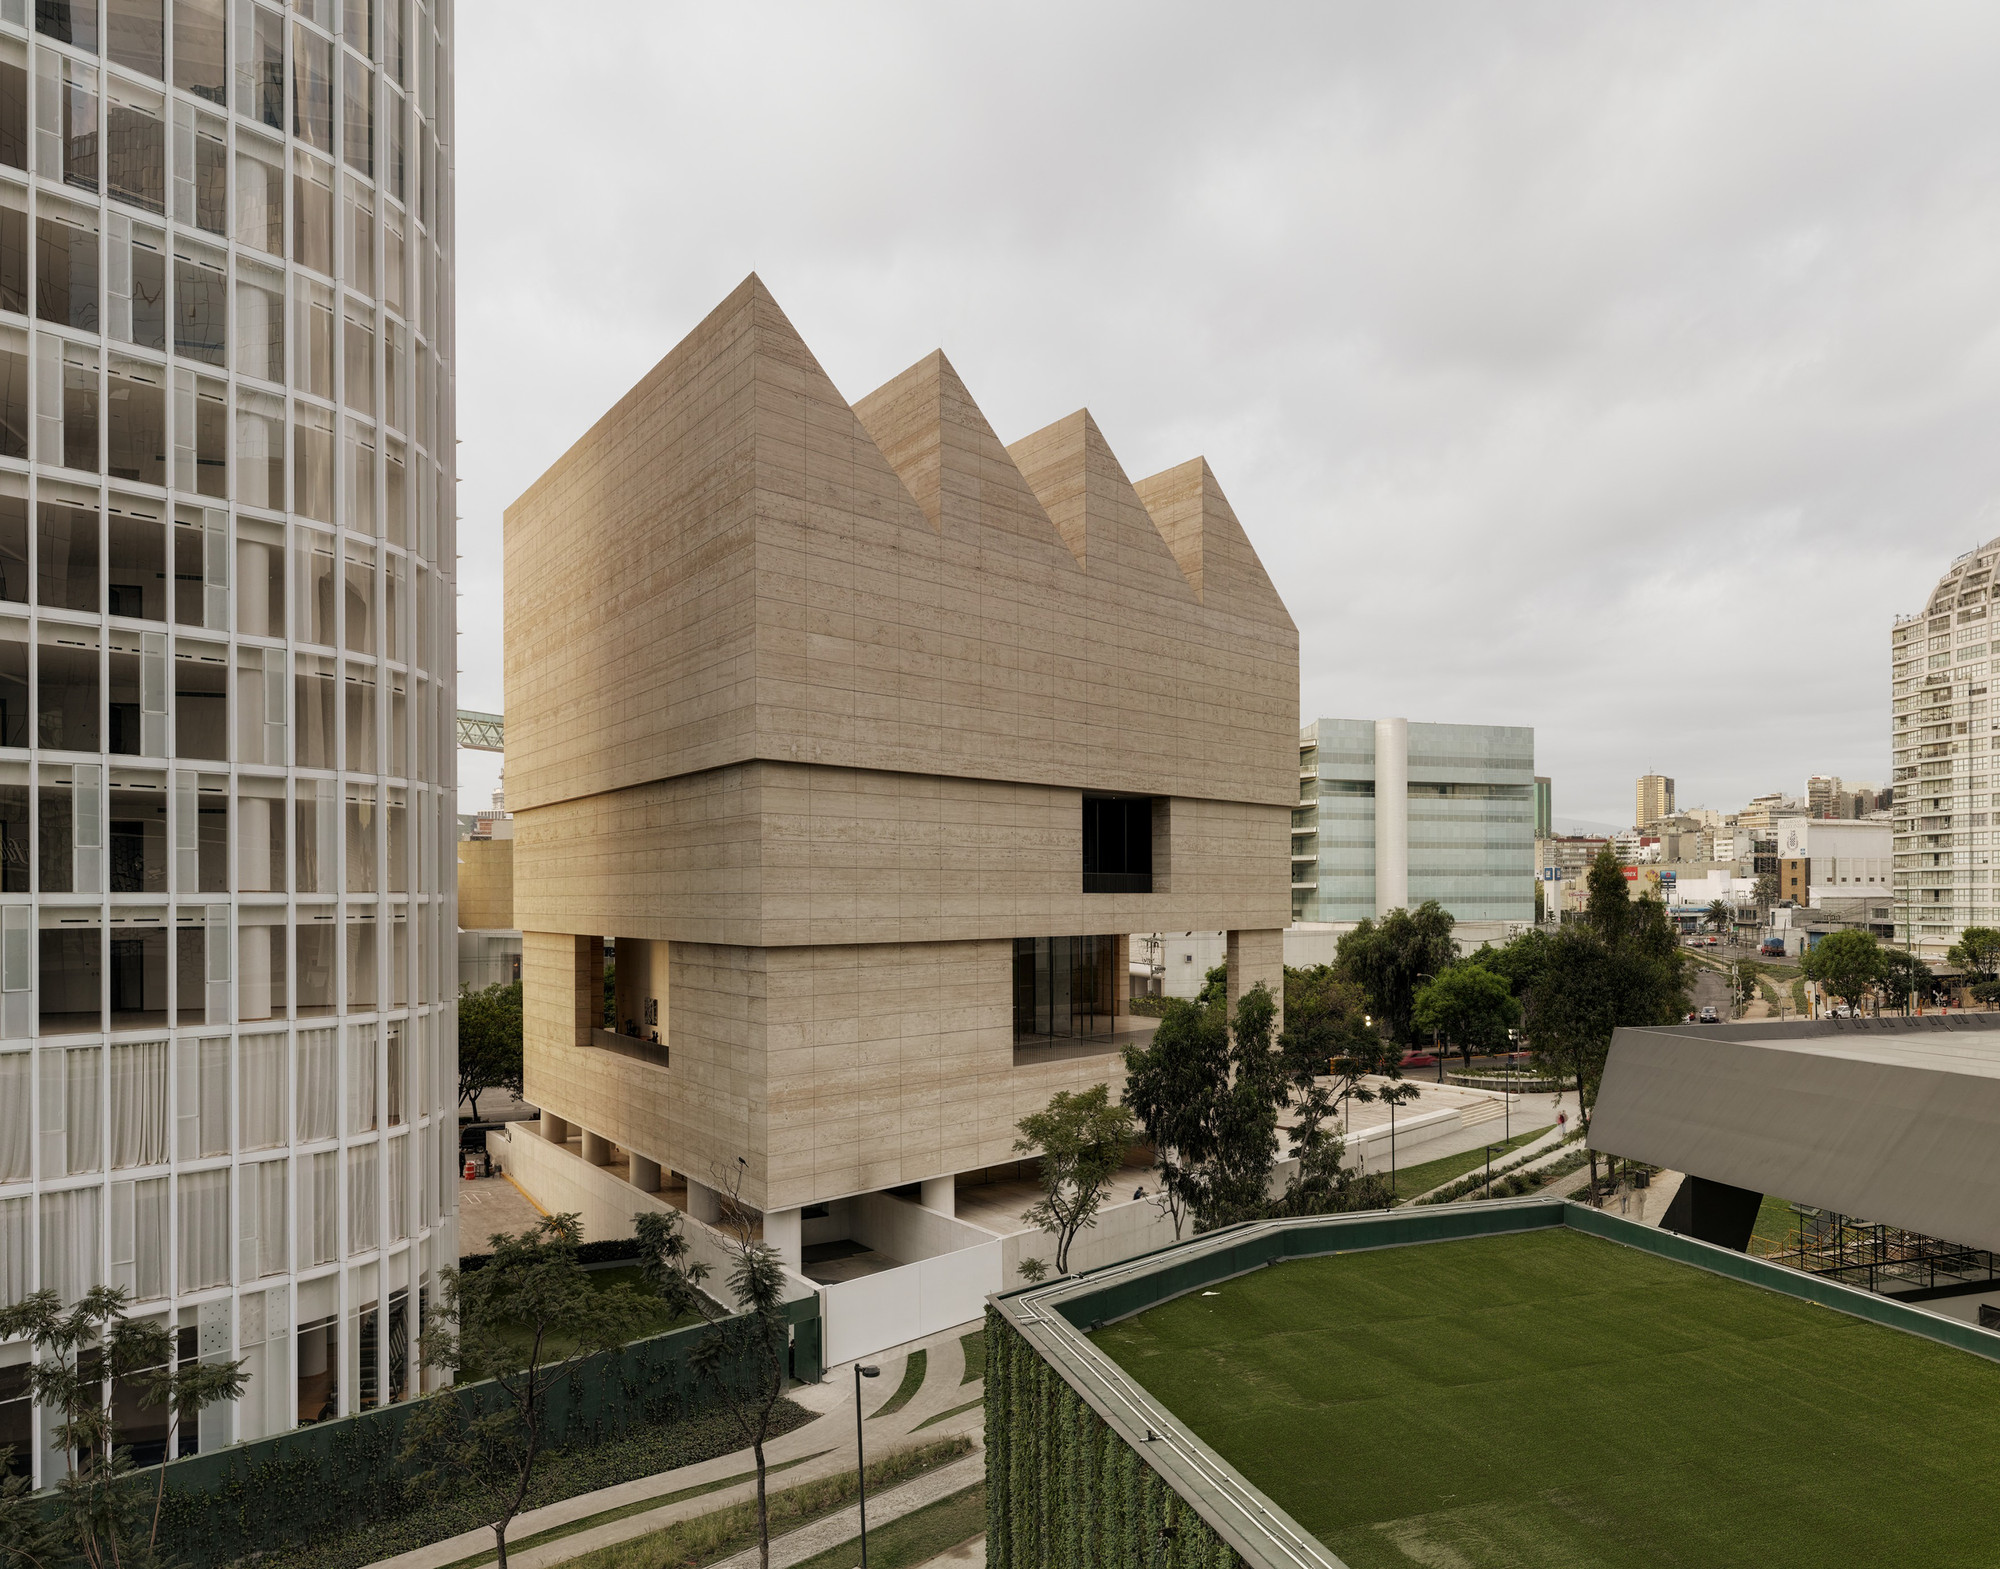 Museo jumex david chipperfield archdaily for Chipperfield arquitecto